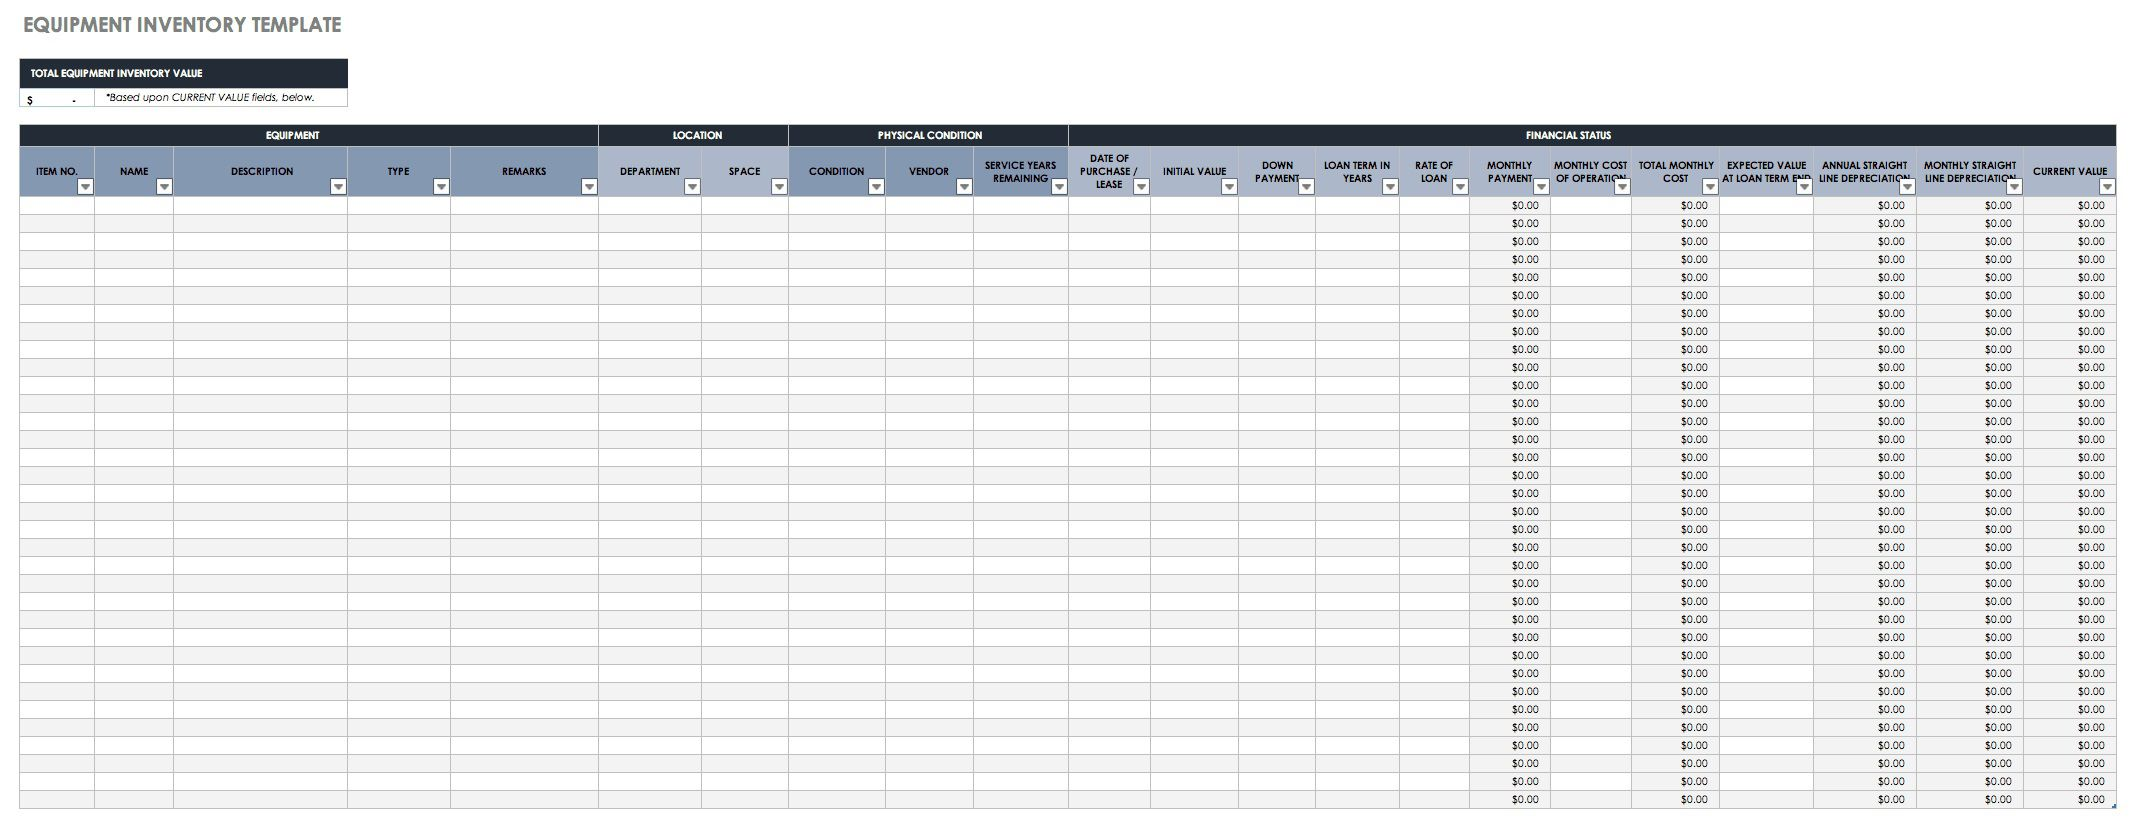 006 Sensational Small Busines Inventory Spreadsheet Template Concept  PdfFull